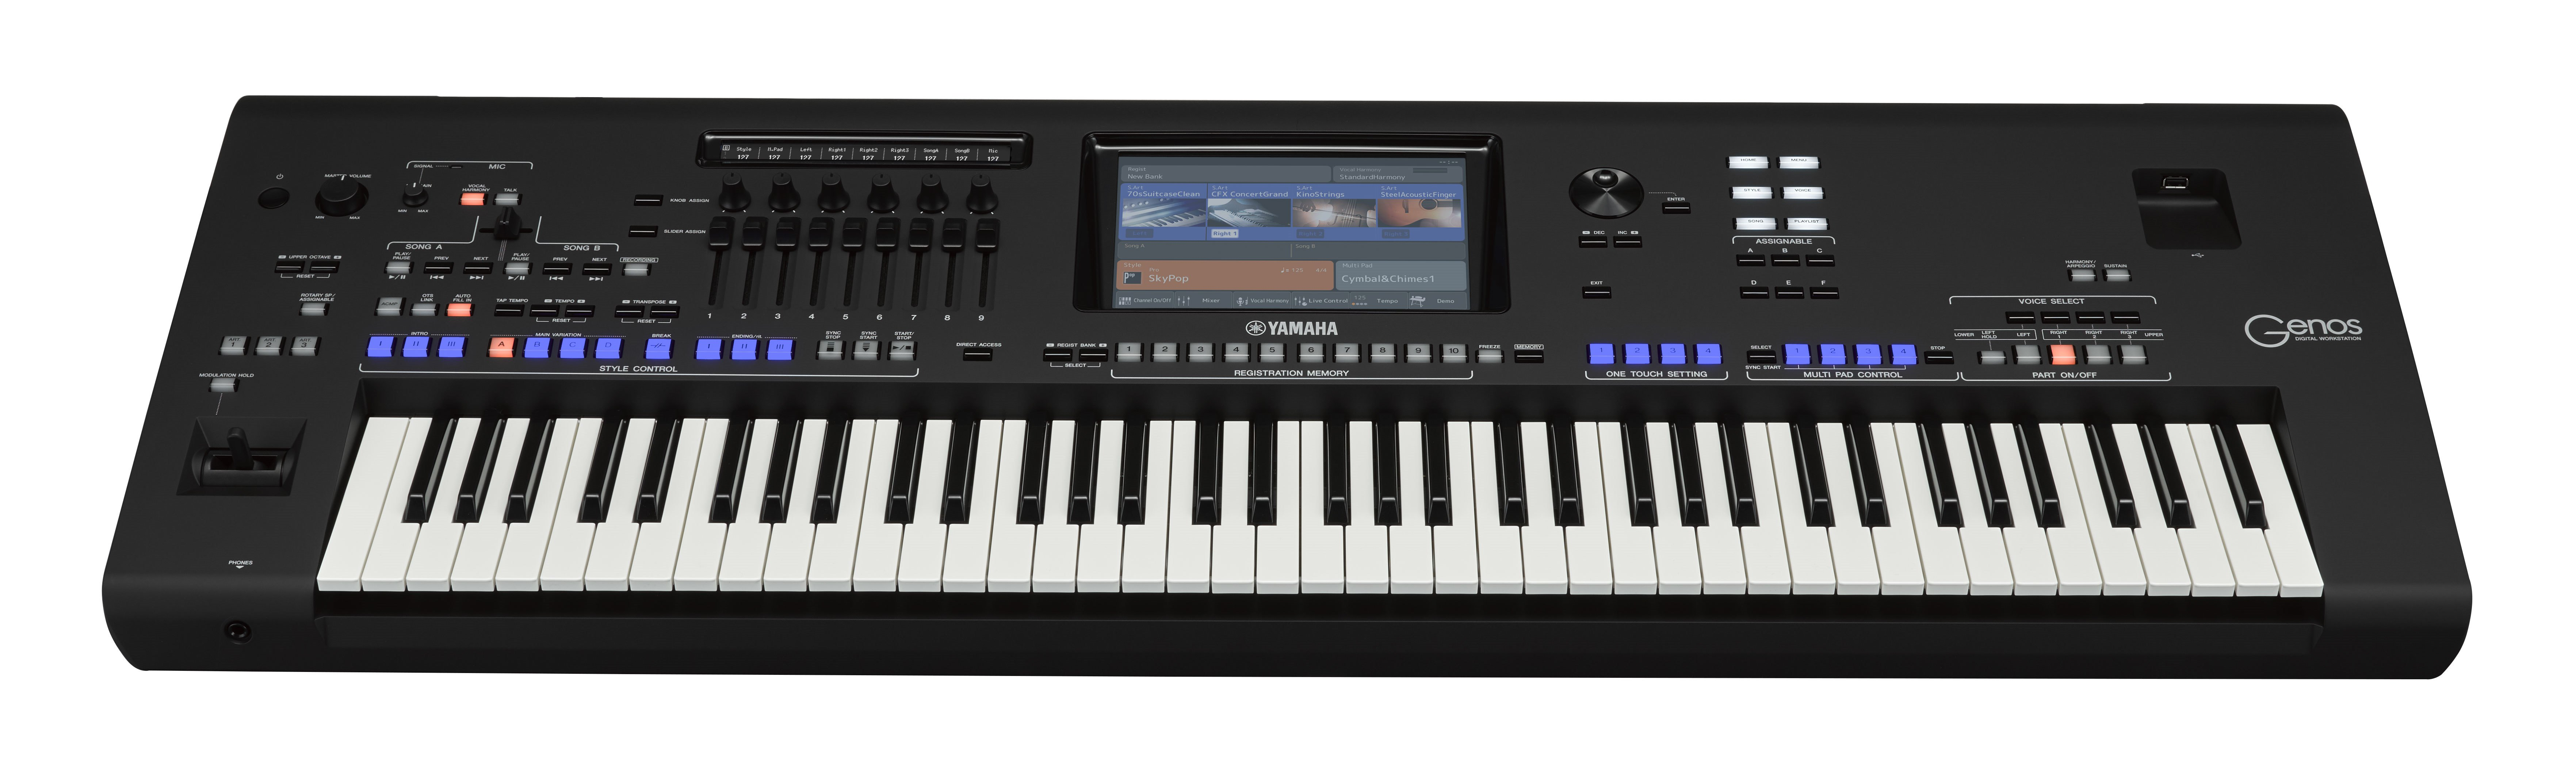 How to use Expansion Manager with your Yamaha Genos - IMMusic